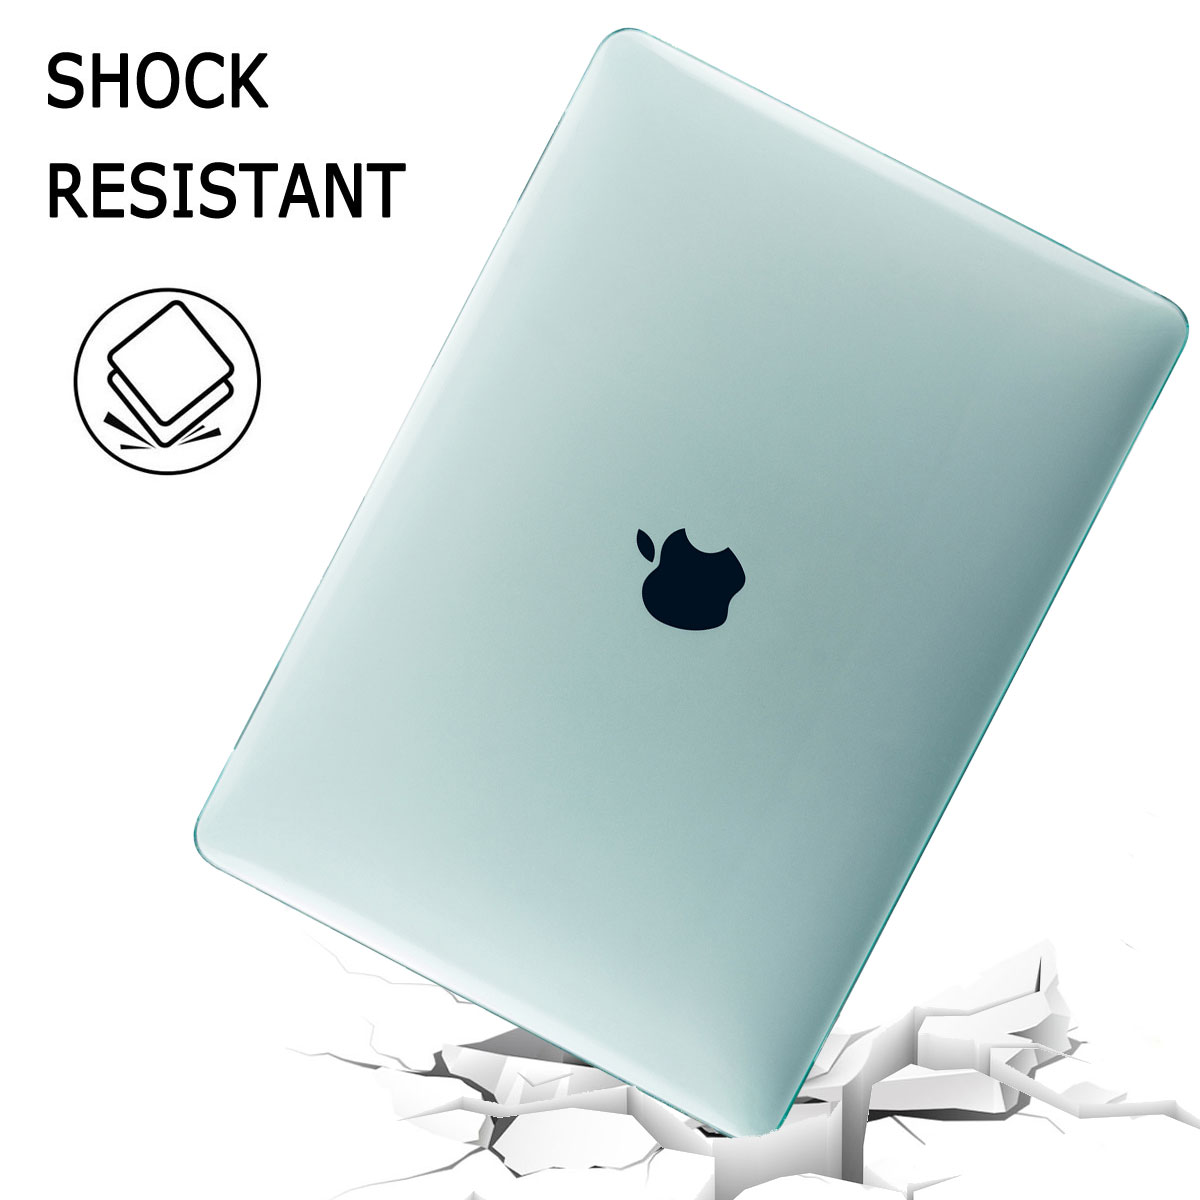 Shockproof-Laptop-Hard-Case-Keyboard-Cover-For-Macbook-Air-13-034-Inch-2018-A1932 thumbnail 26